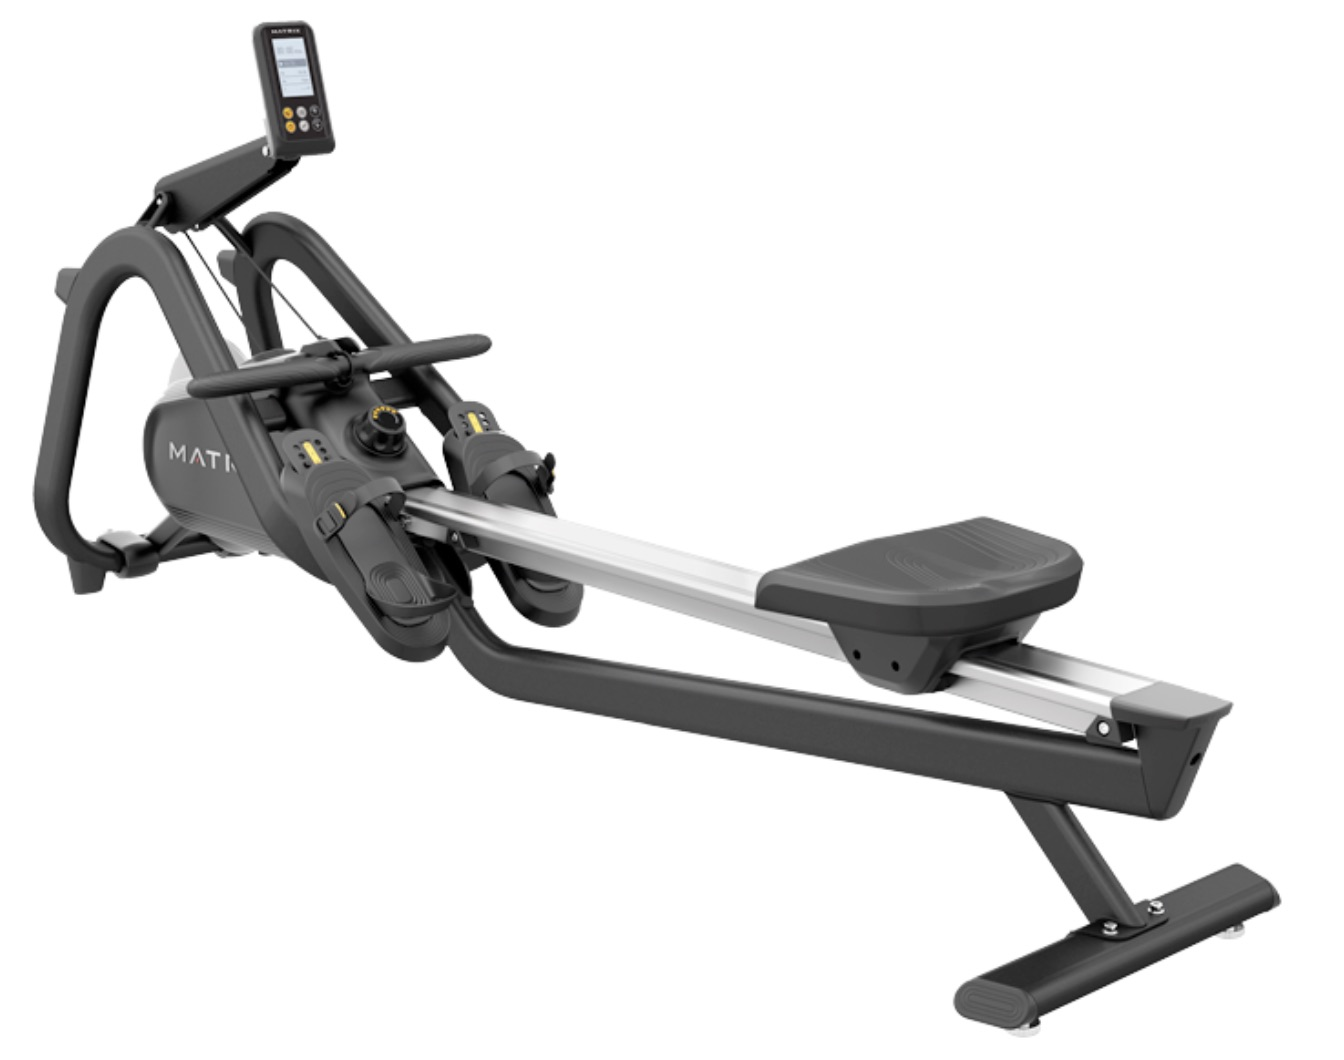 Matrix Rower Review